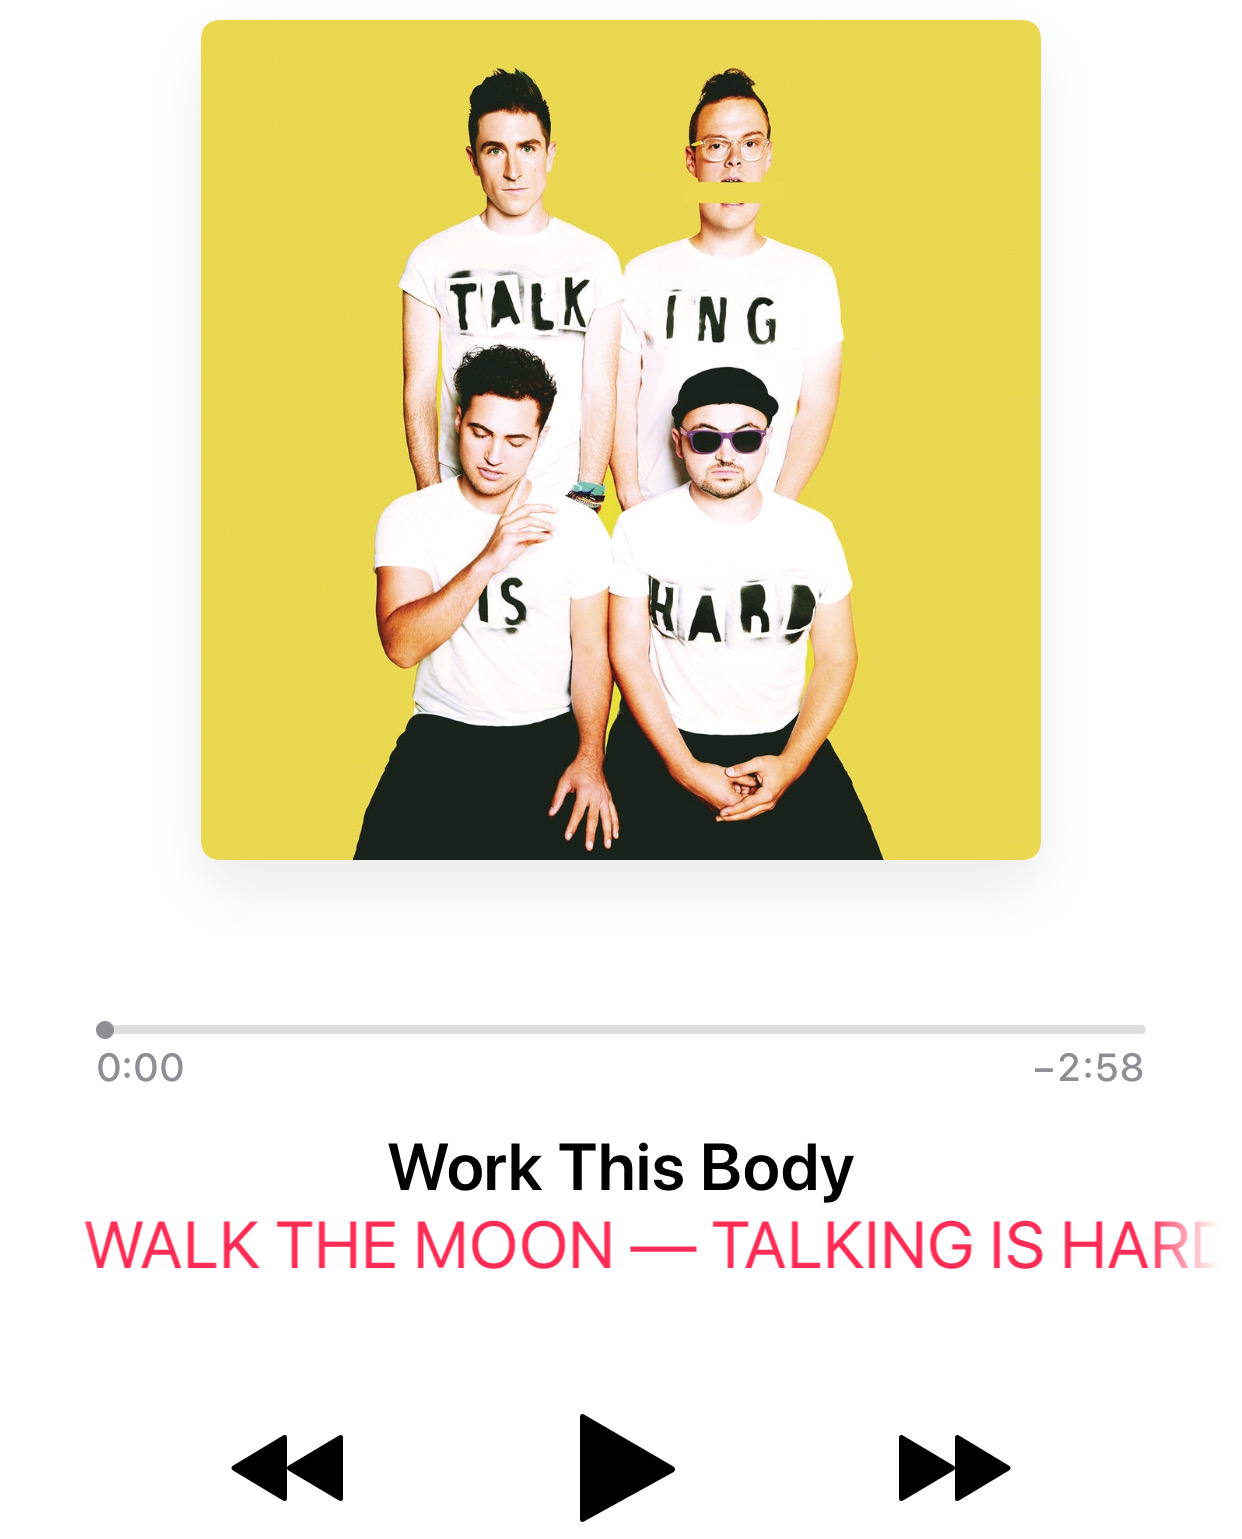 180620 Walk the Moon Work This Body.JPG